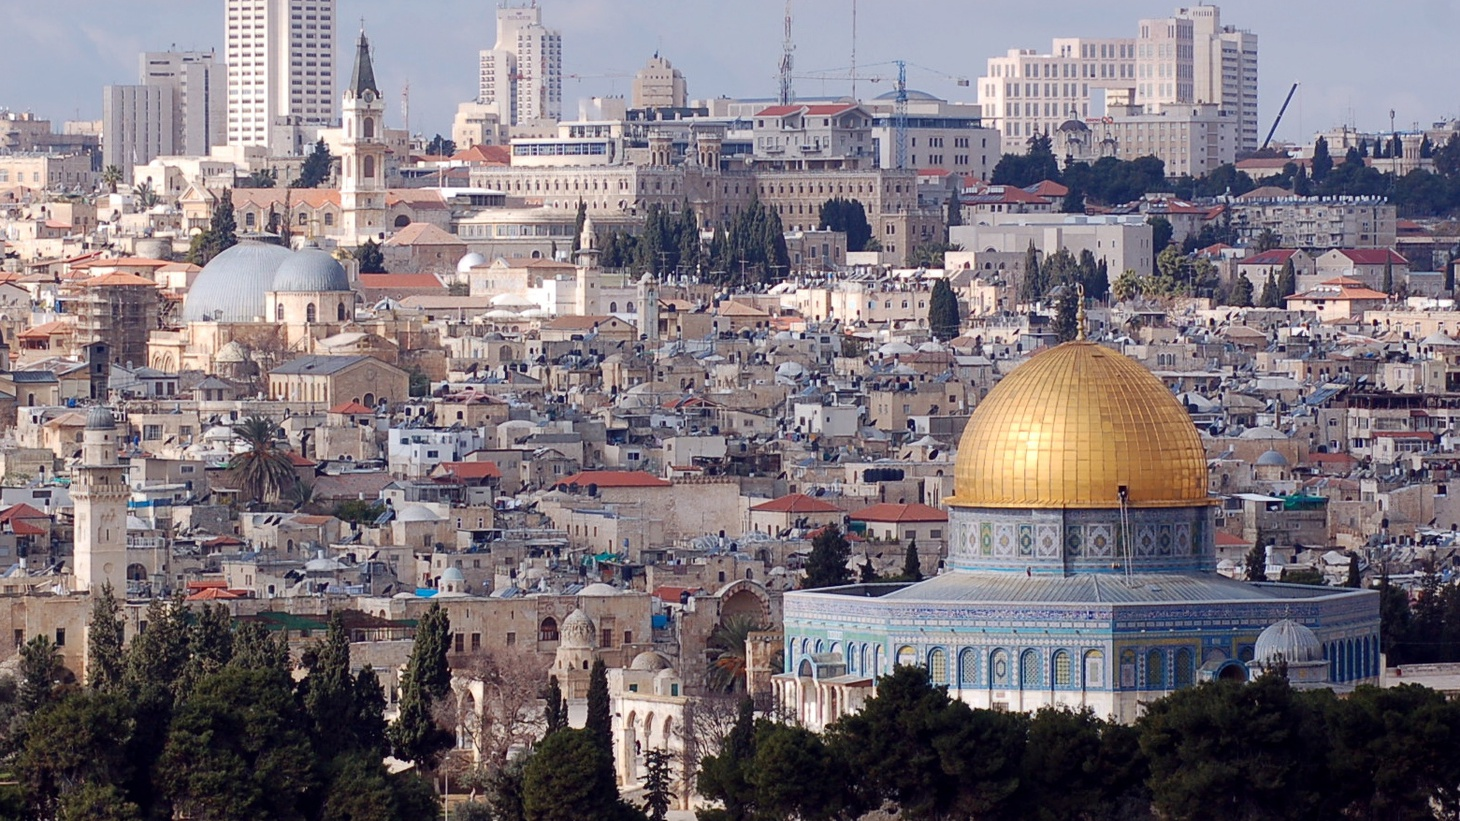 President Trump says the US is recognizing Jerusalem as the capital of Israel. He calls it a campaign promise, but is it a wise move?